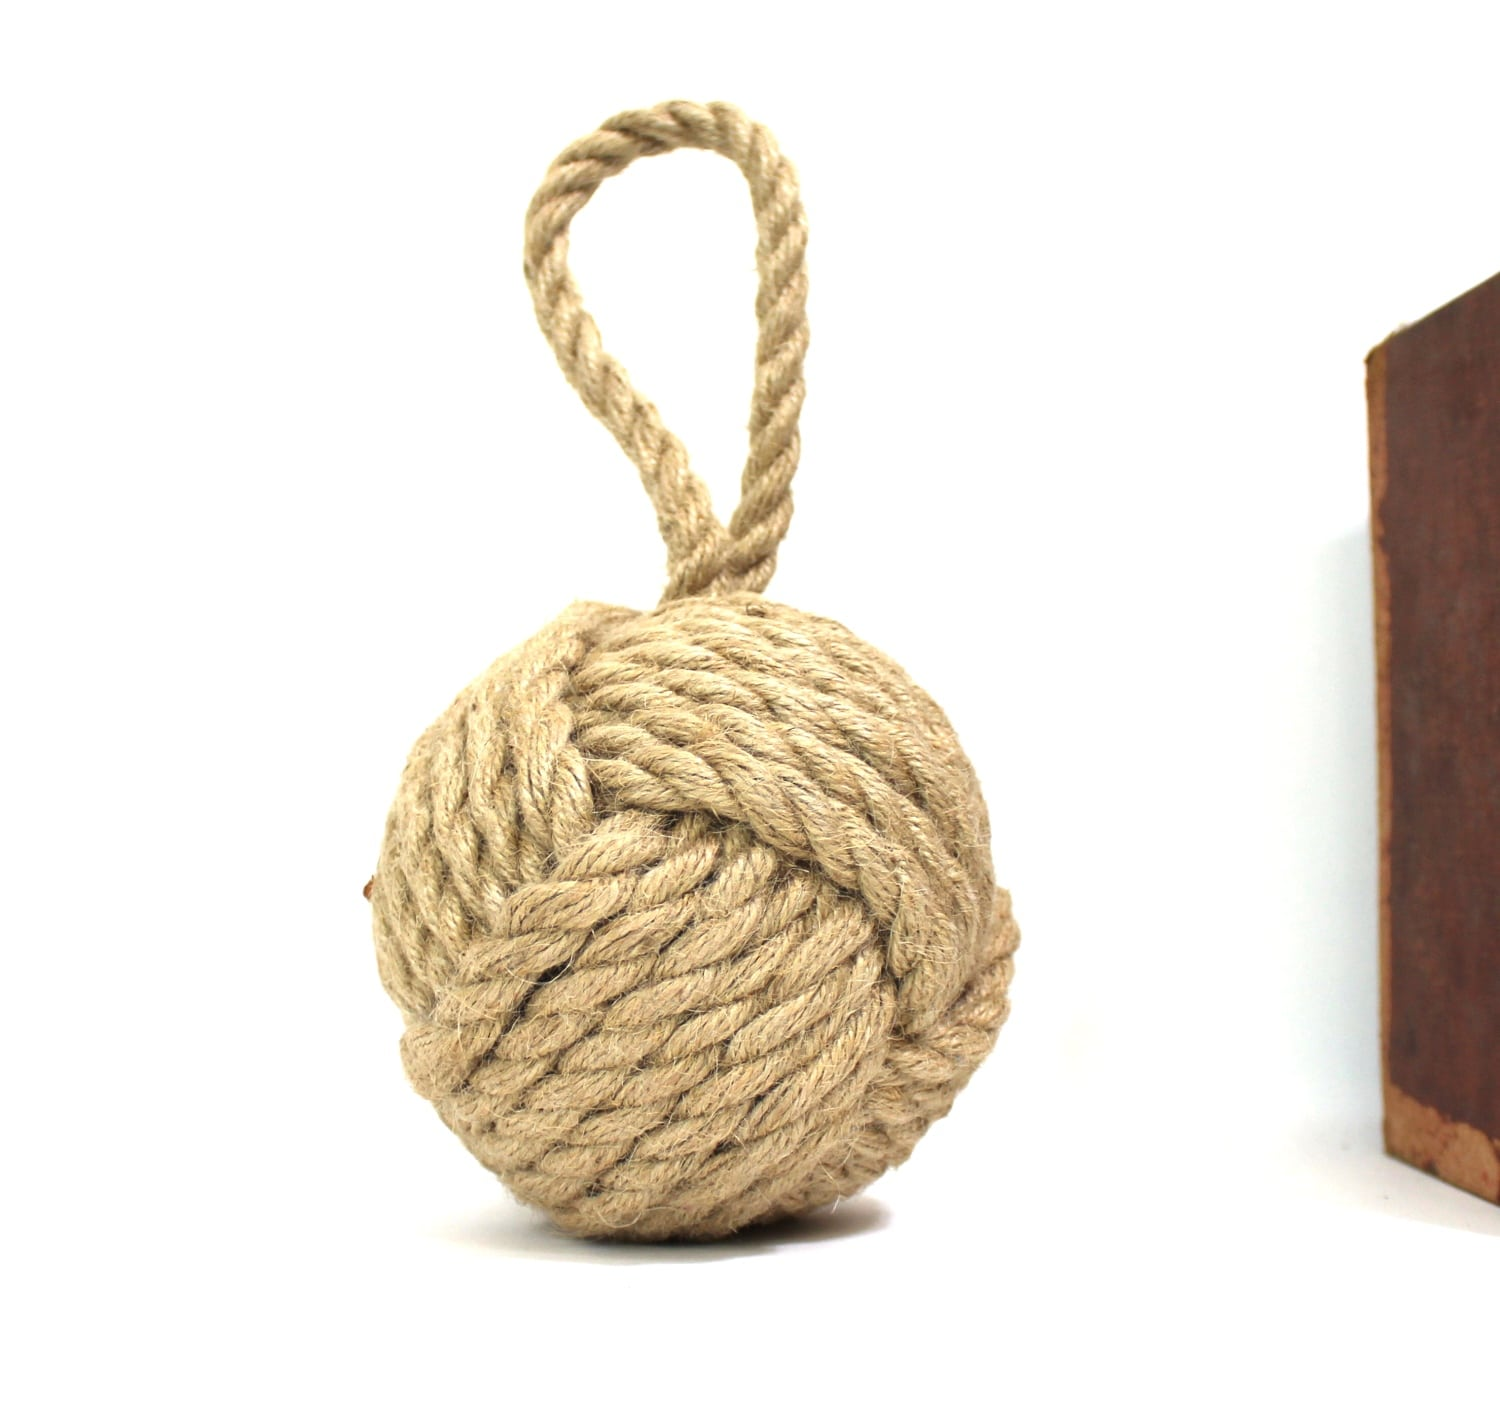 Heavy Weight Door Stop Hemp Rope Ball Heavy Door Stop Monkey Fist Nautical Sailors Knot Old Style